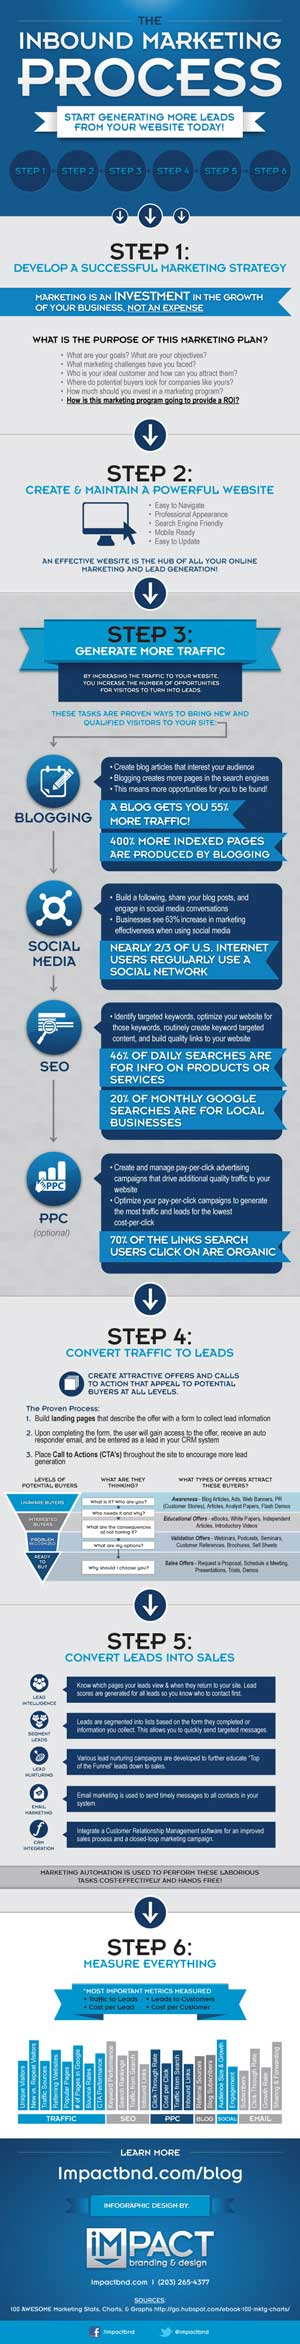 Procesul de Inbound Marketing Infographic